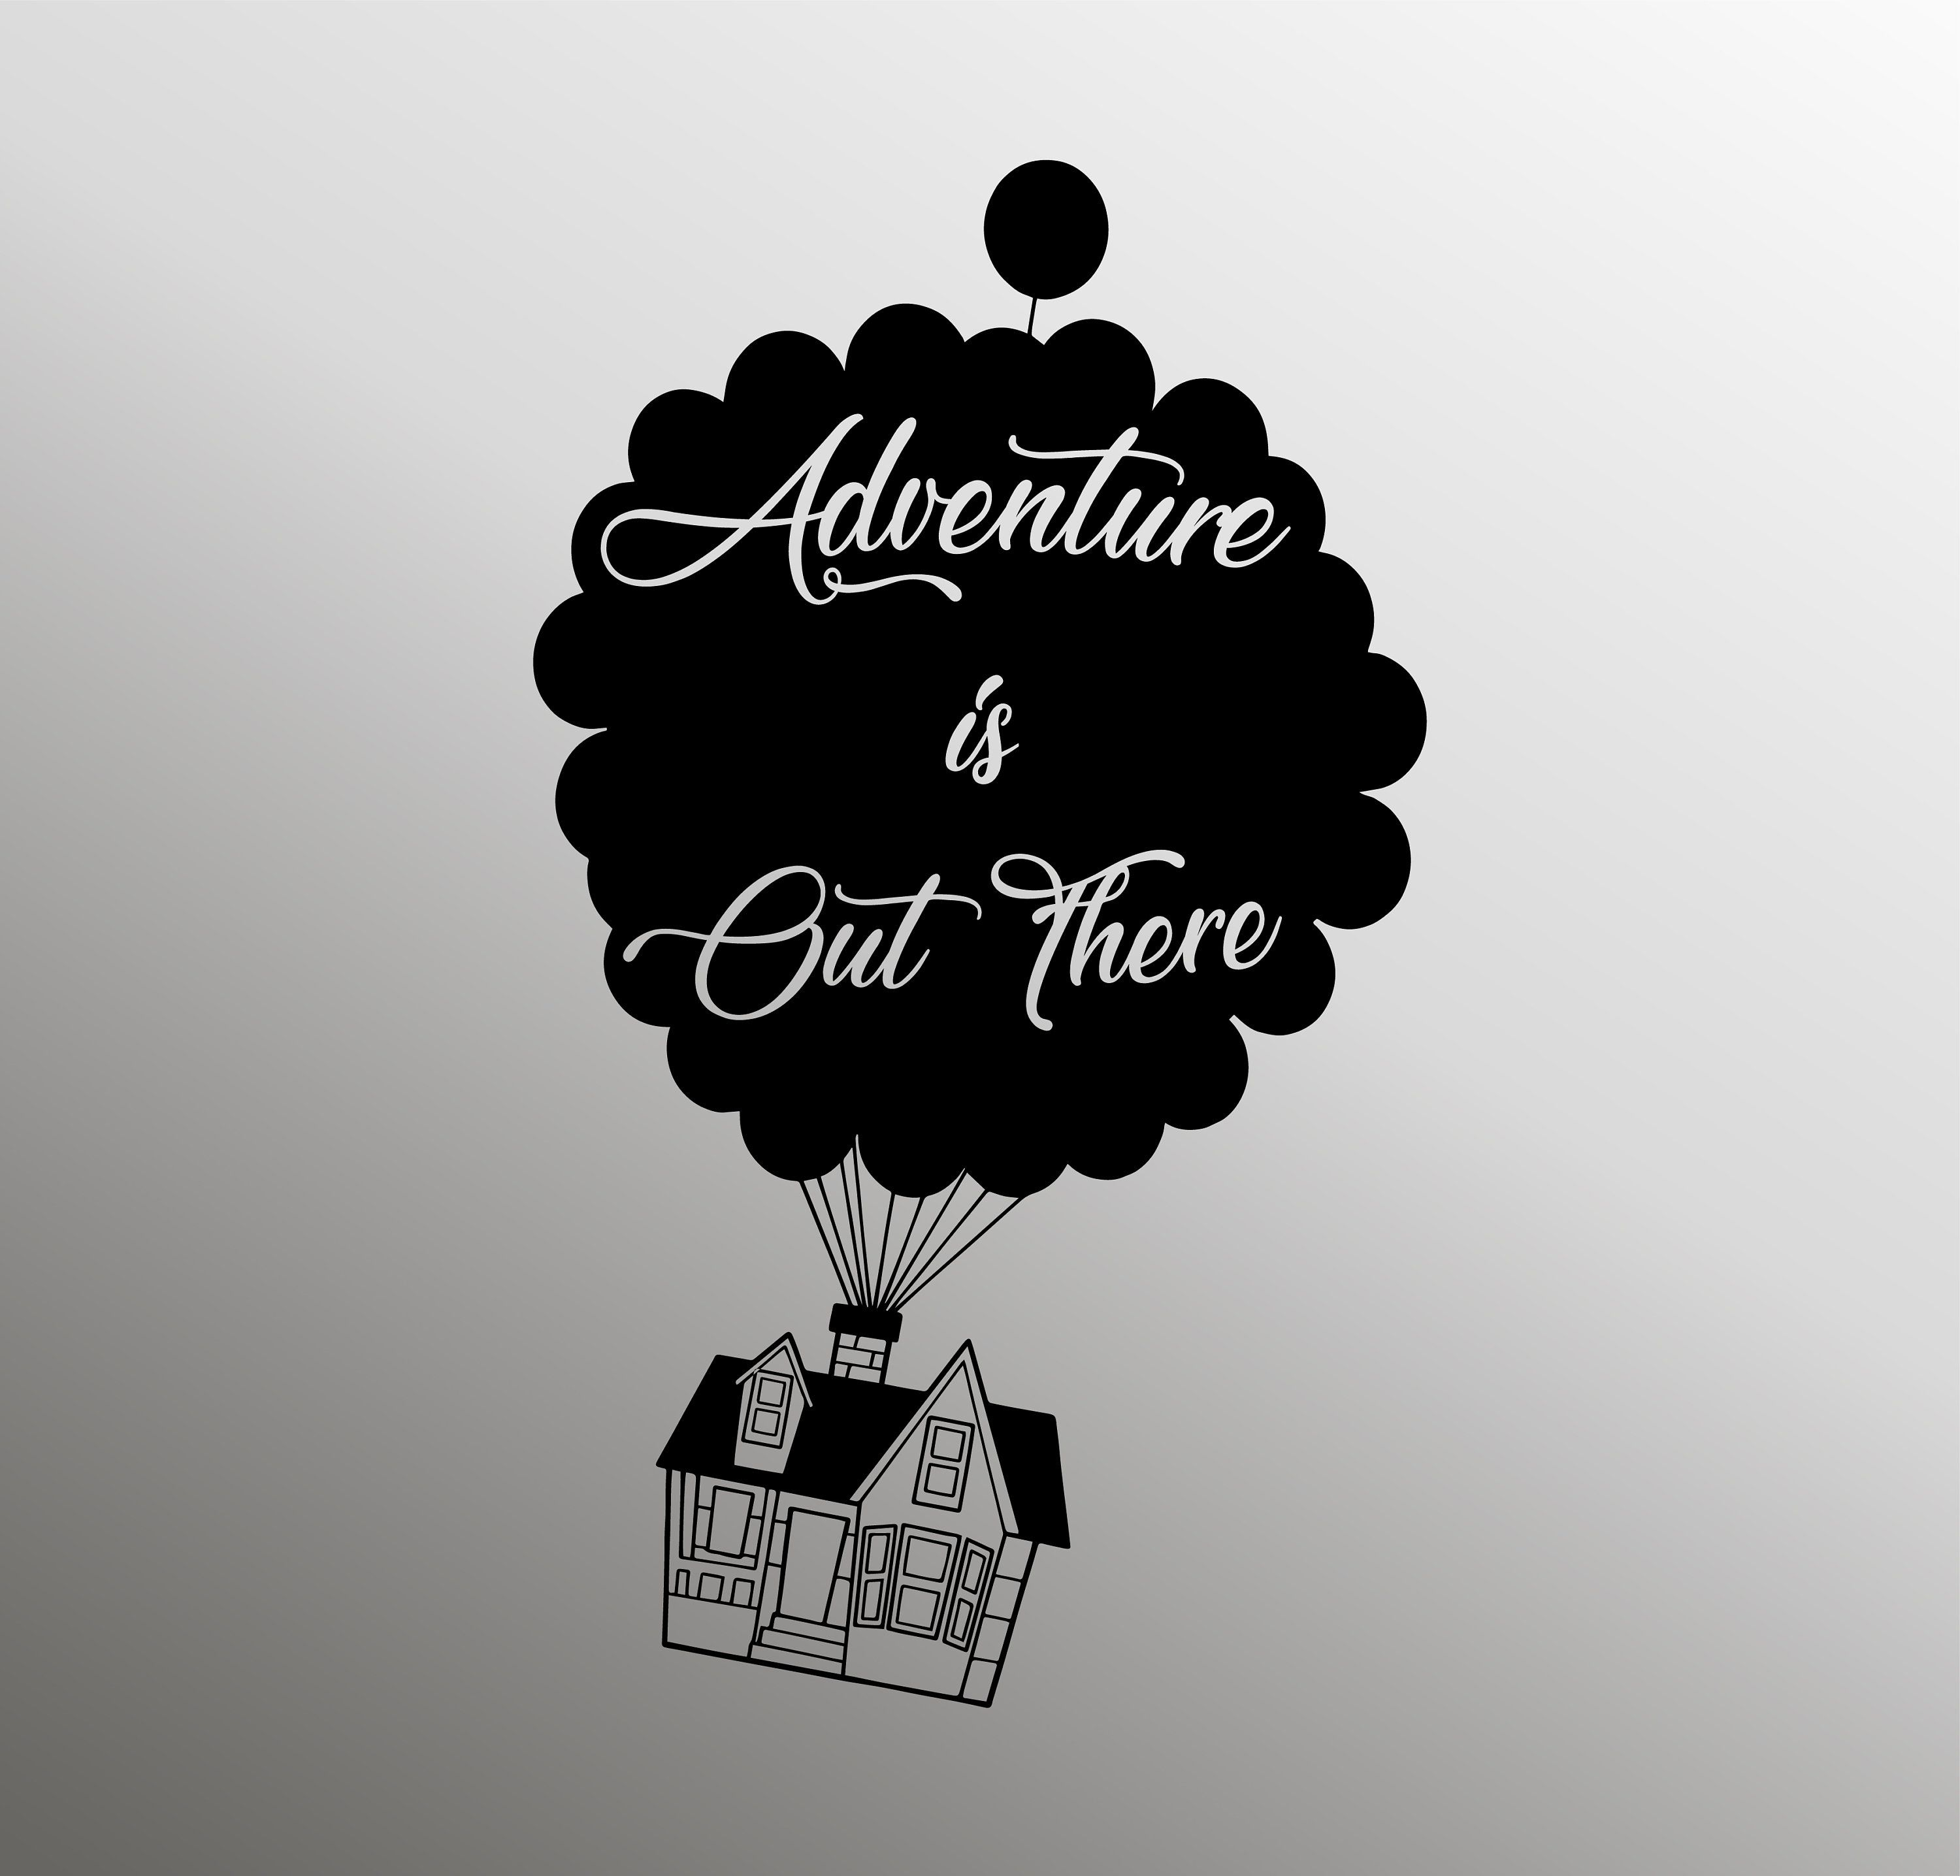 Adventure Is Out There Svg Up Svg Up Movie Svg Disney Svg Etsy Disney Silhouette Disney Up Disney Silhouettes